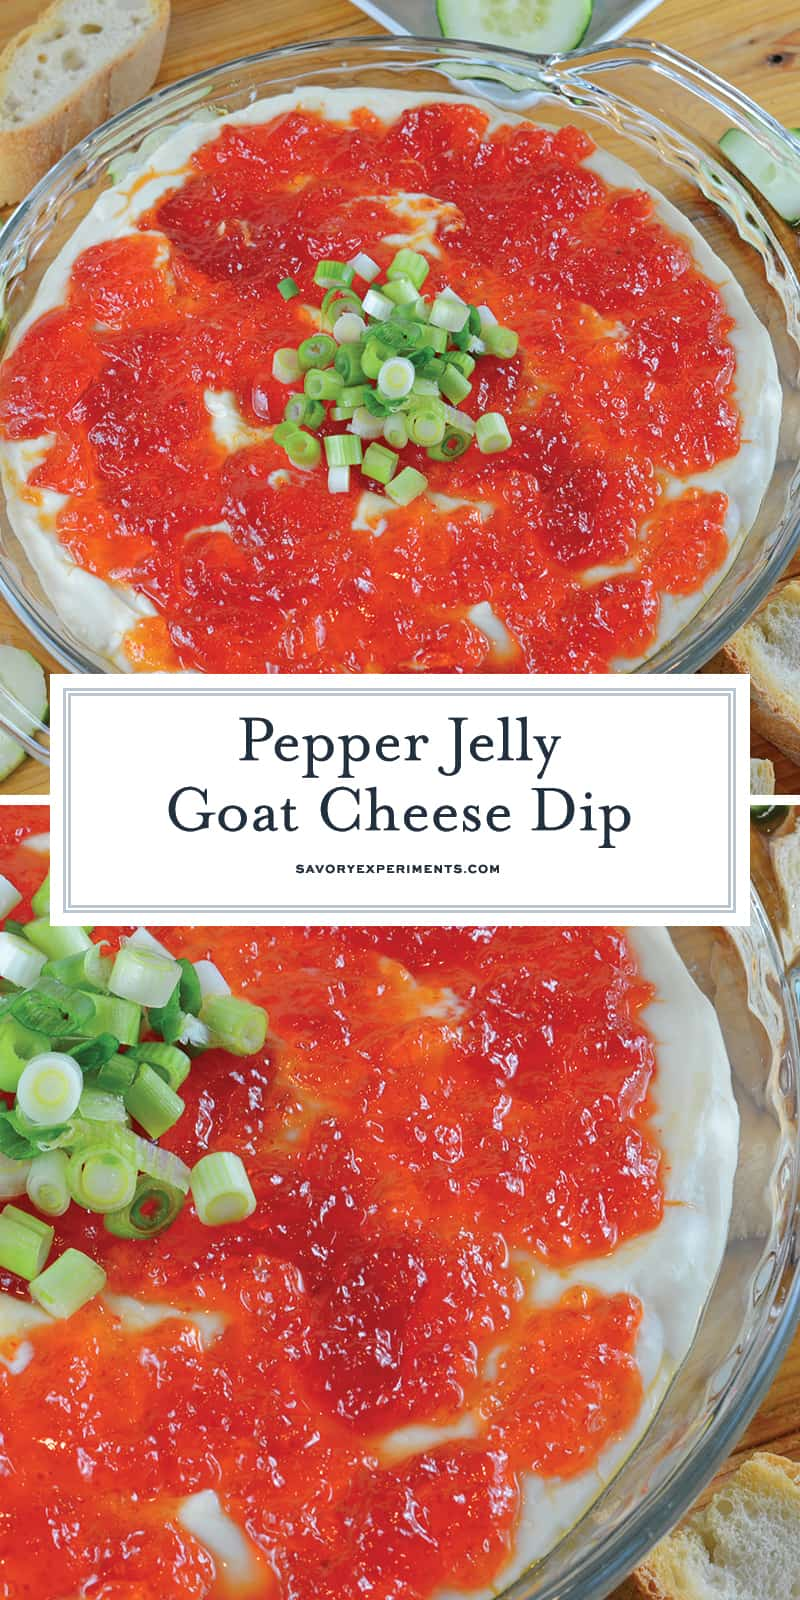 Baked Goat Cheese Dip is one of the most popular dips I make! This goat cheese recipe is creamy and full of sweet heat and the perfect potluck dish or party appetizer! #goatcheeserecipes #goatcheesedip www.savoryexperiments.com